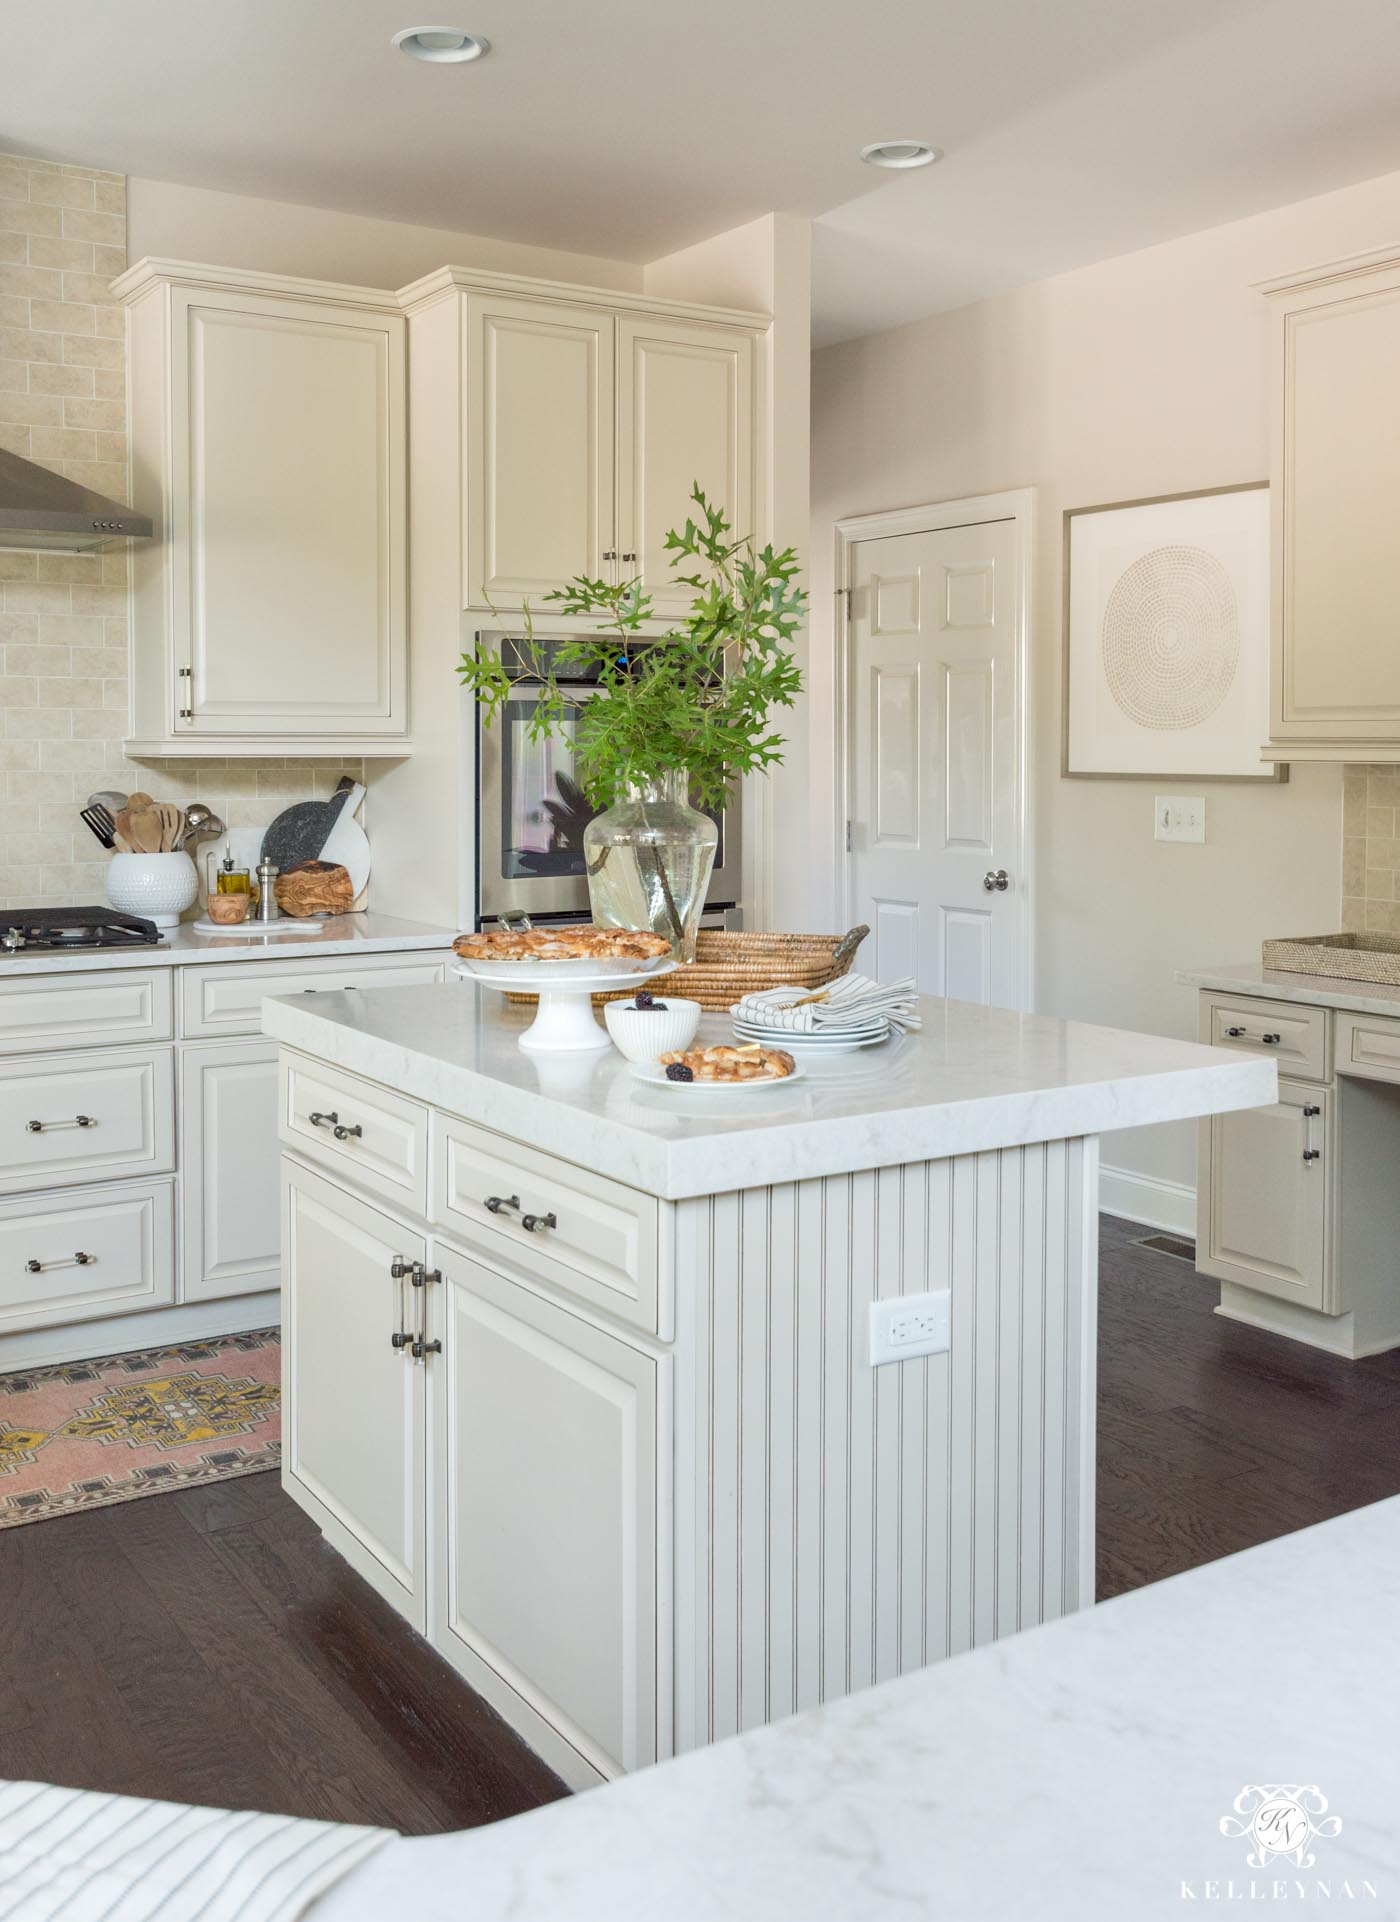 How to make a traditional kitchen with cream cabinets more modern